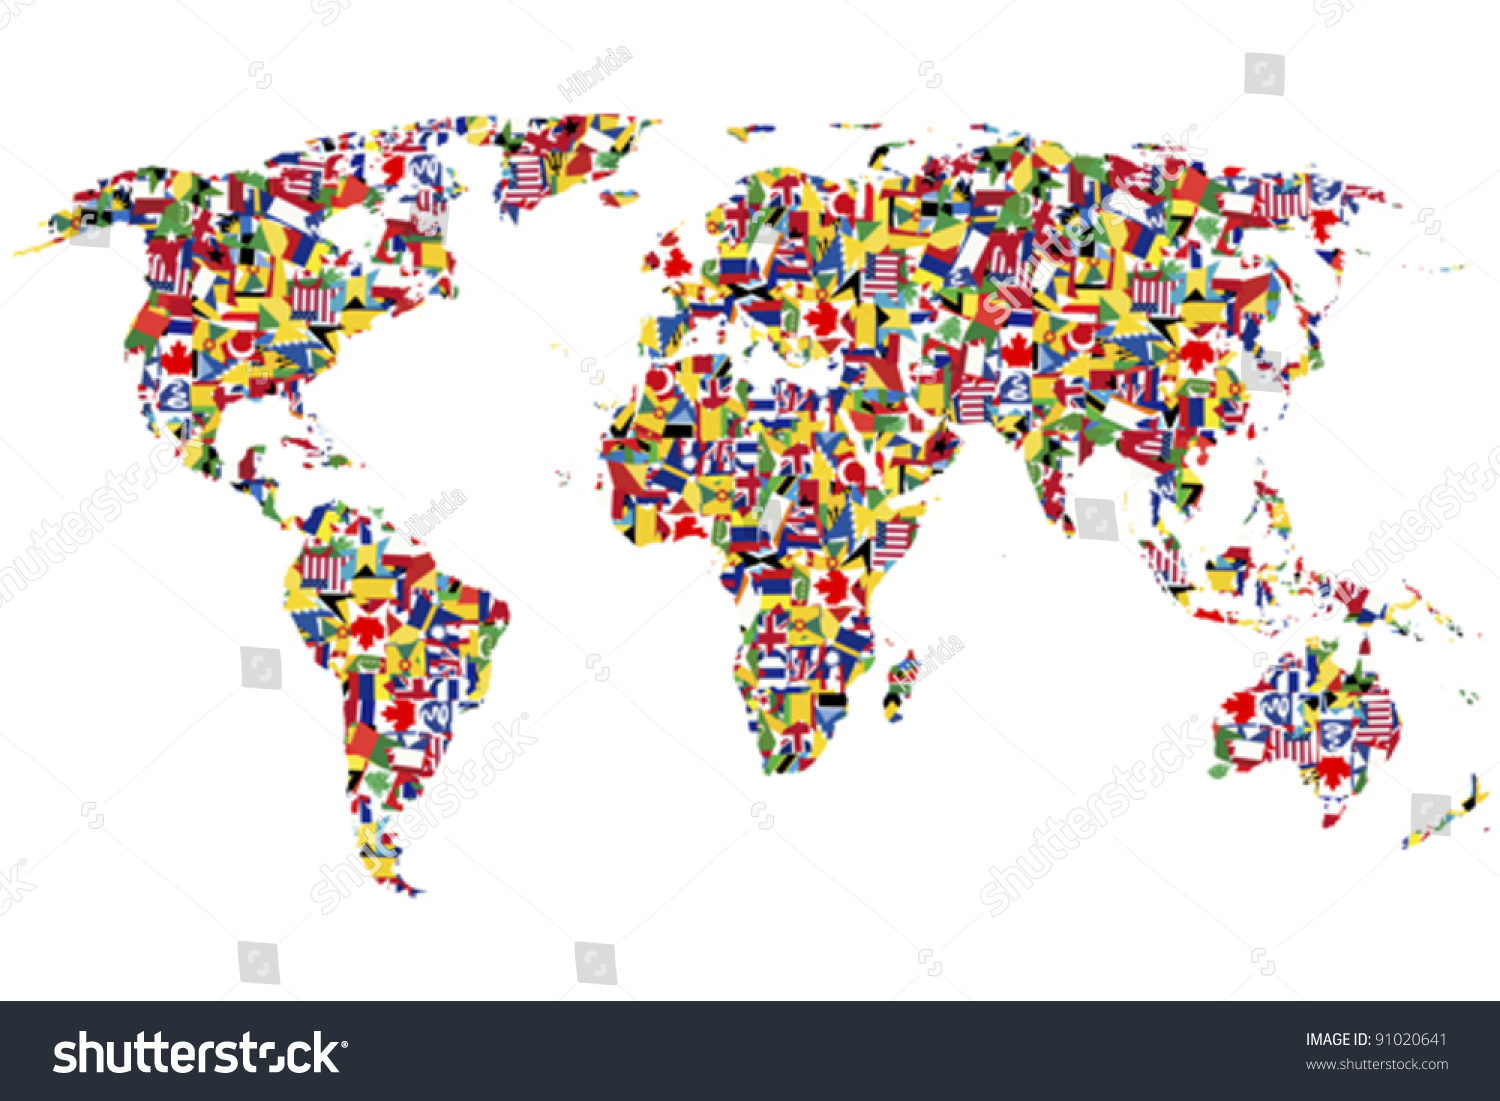 World map made flags stock vector royalty free 91020641 shutterstock world map made of flags gumiabroncs Gallery